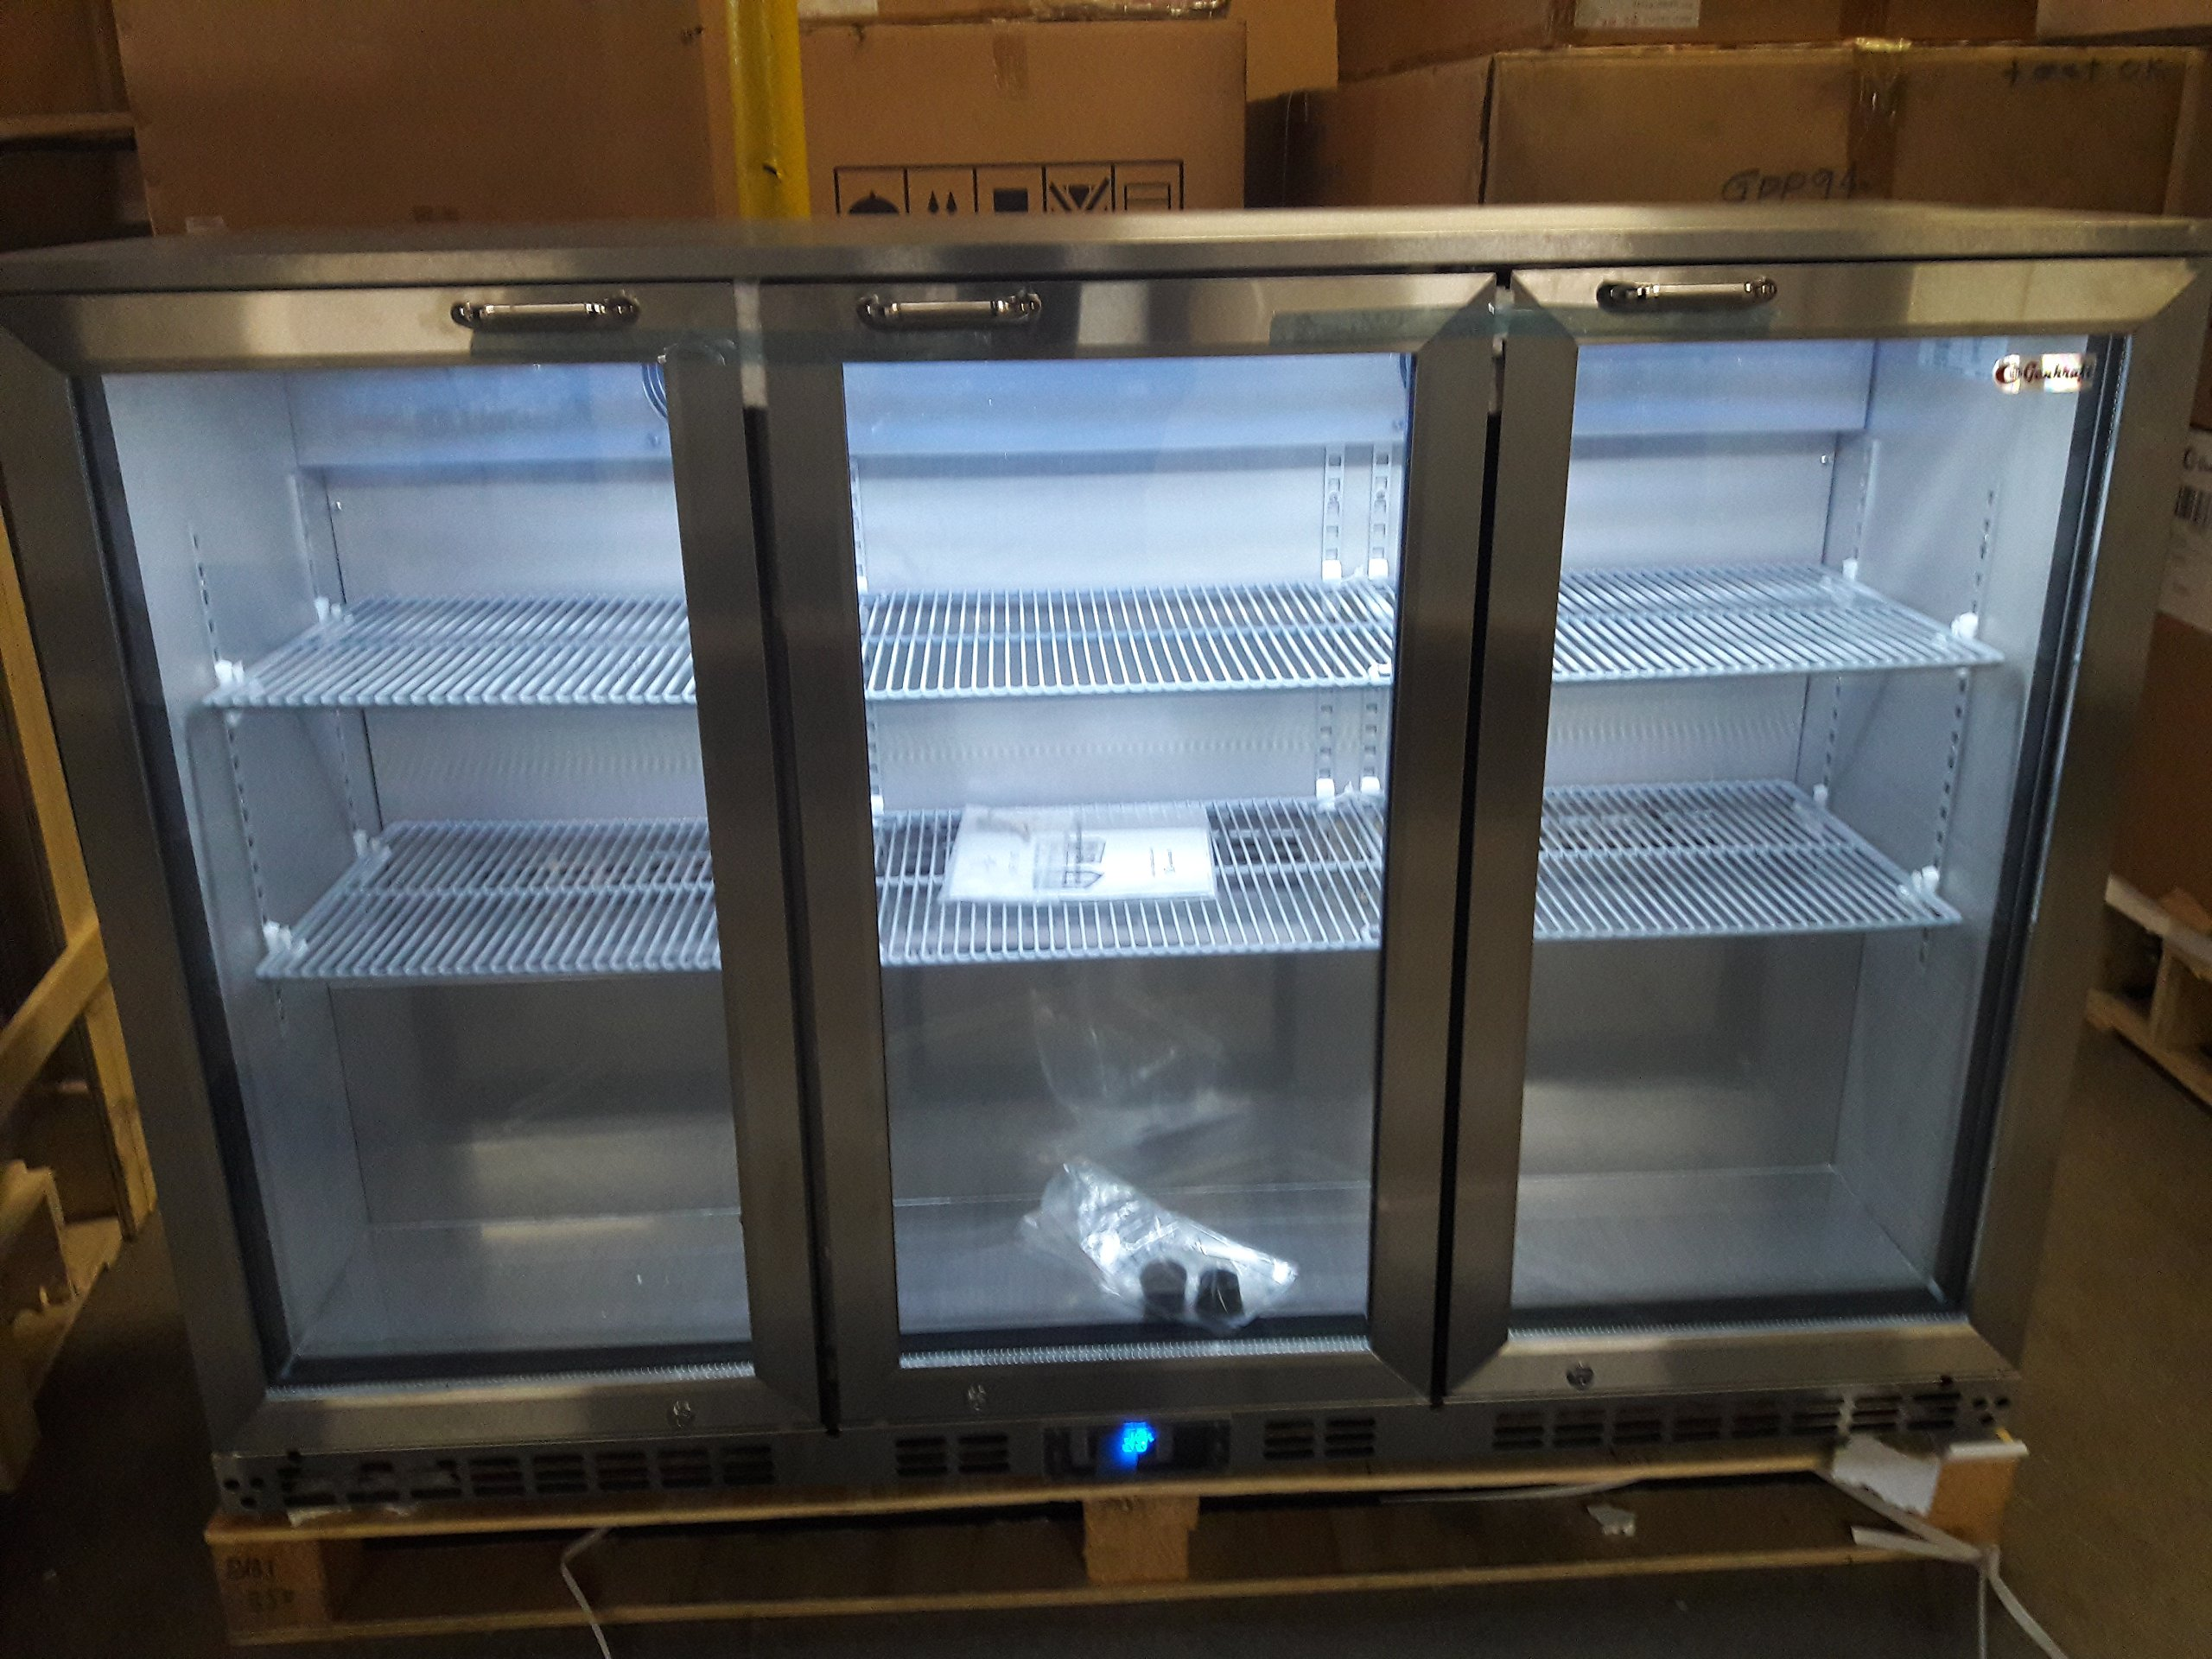 GenKraft Commercial Back Bar Cooler, 53.5 inch Stainless Steel, - For use in the Stores & food service industry such as restaurants, bars, food catering, etc.